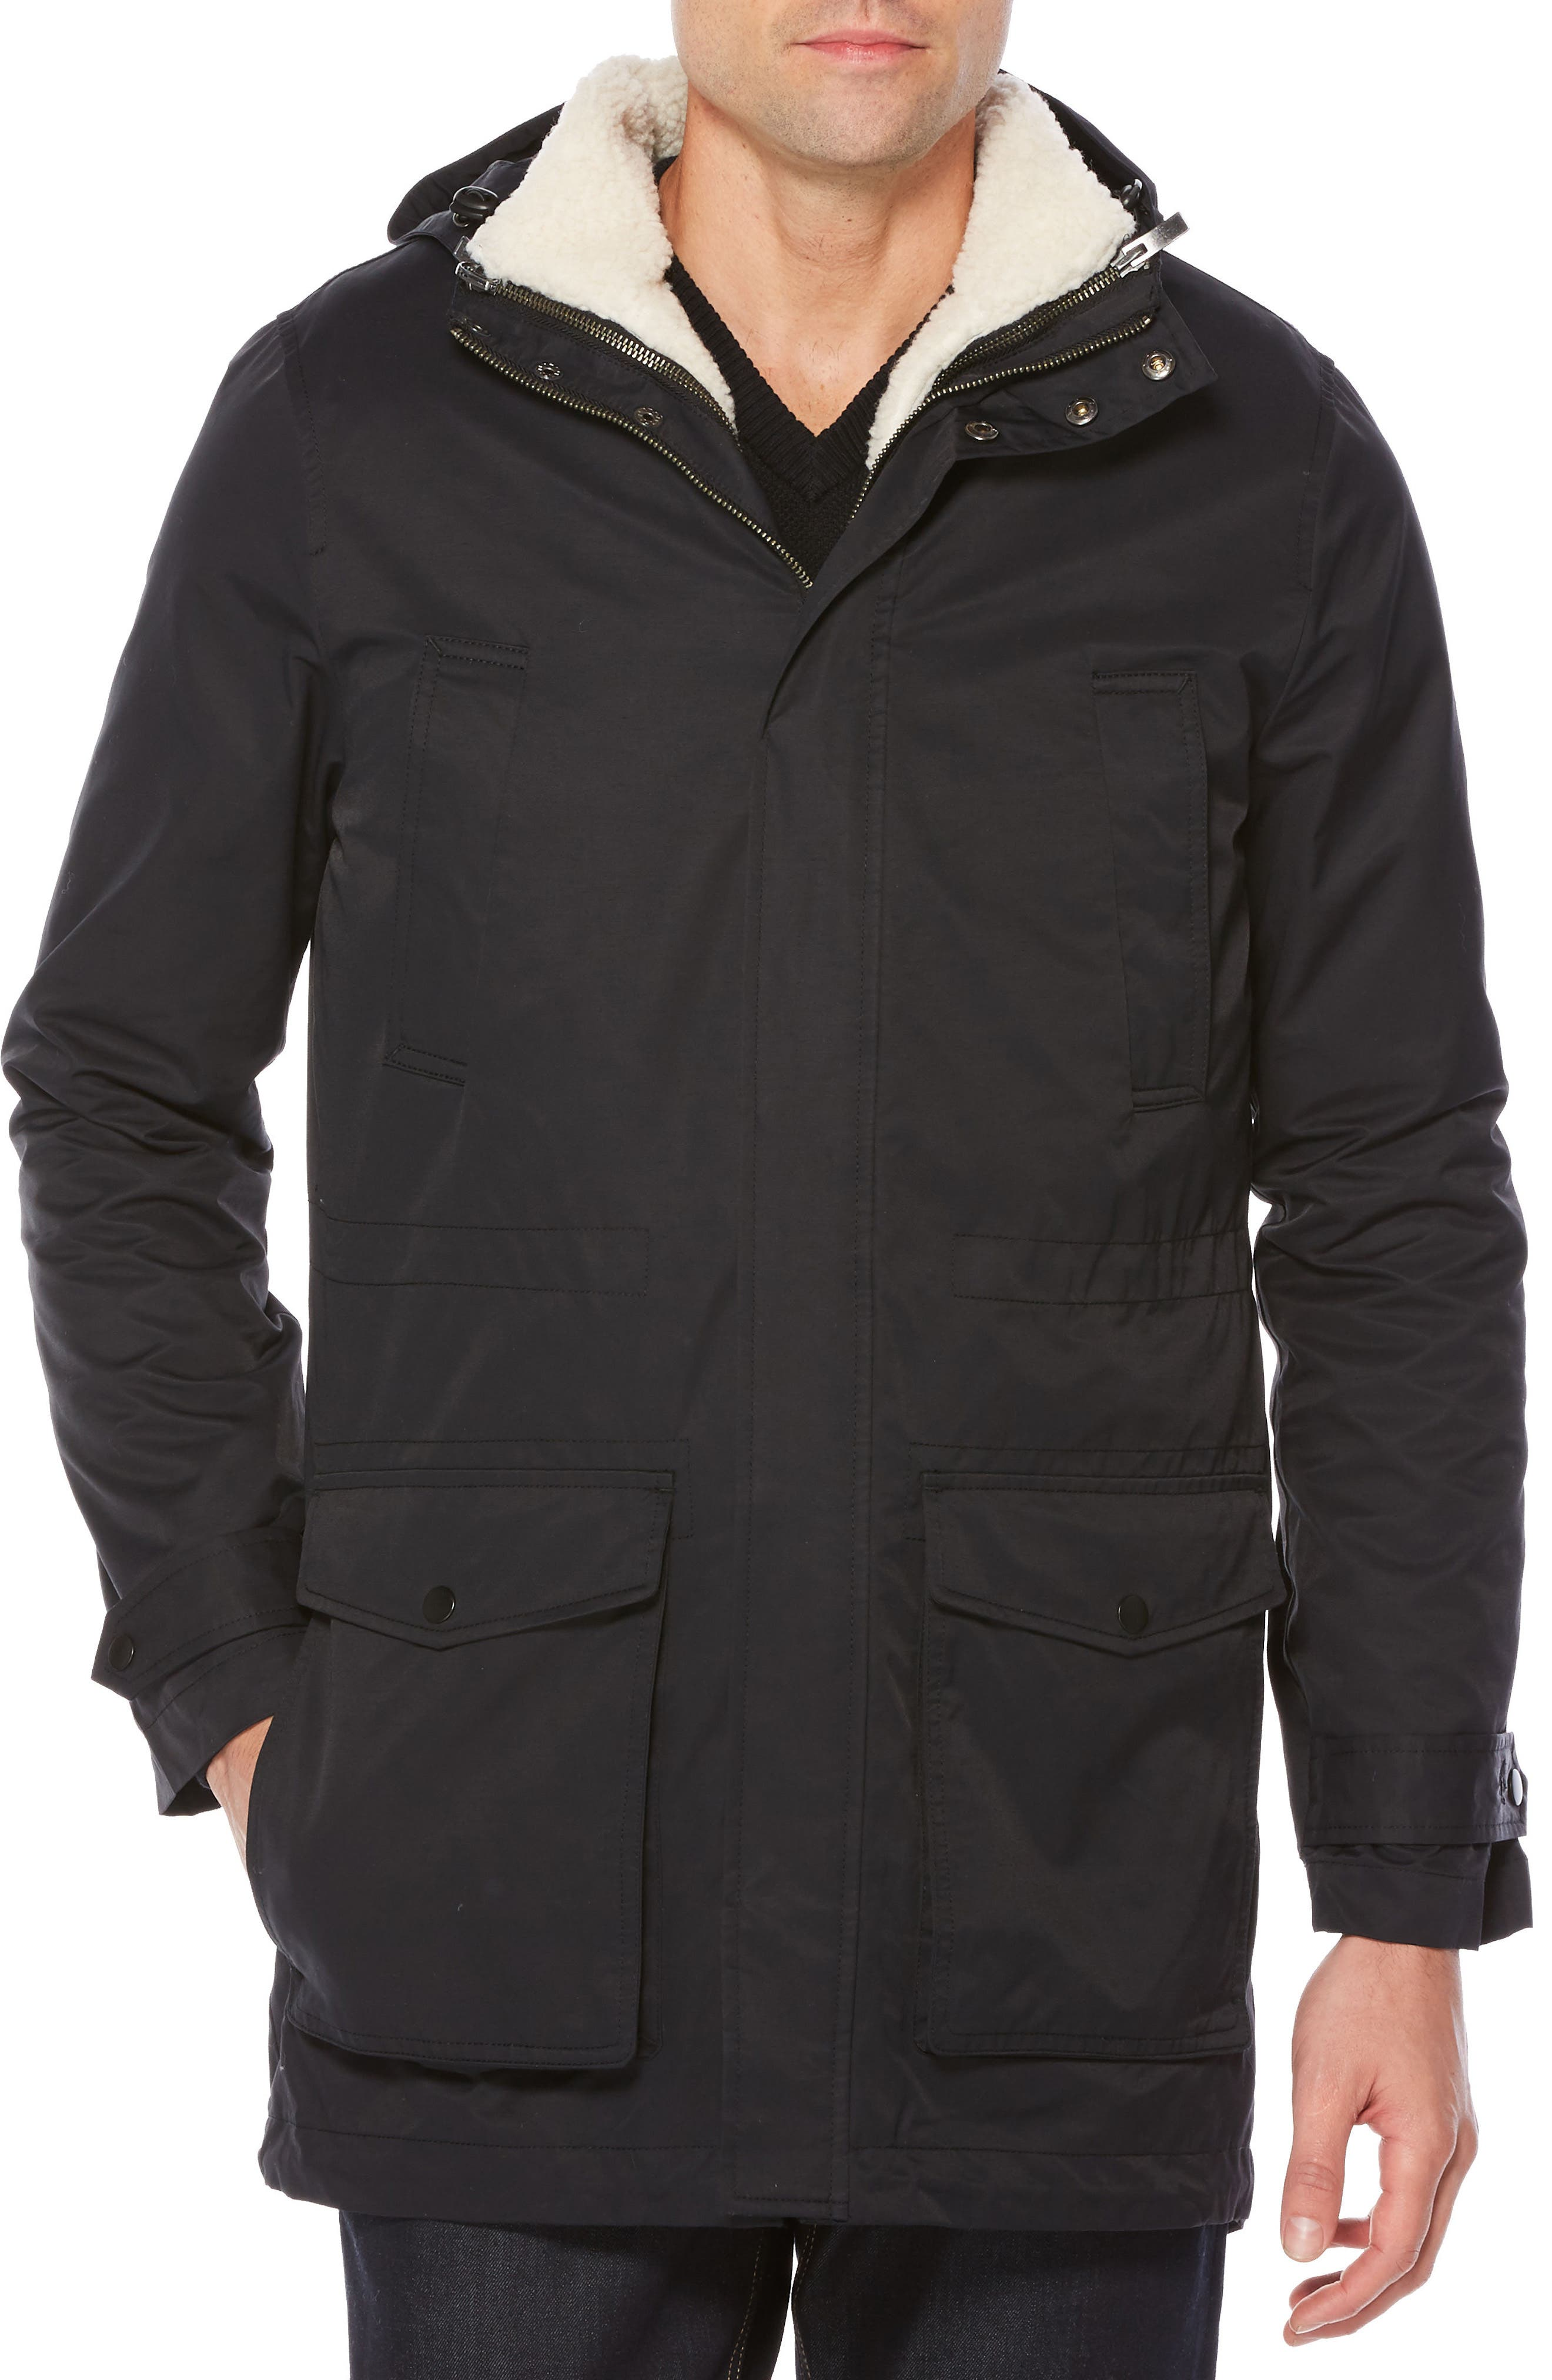 Alternate Image 1 Selected - Original Penguin 4-in-1 Water Resistant Jacket